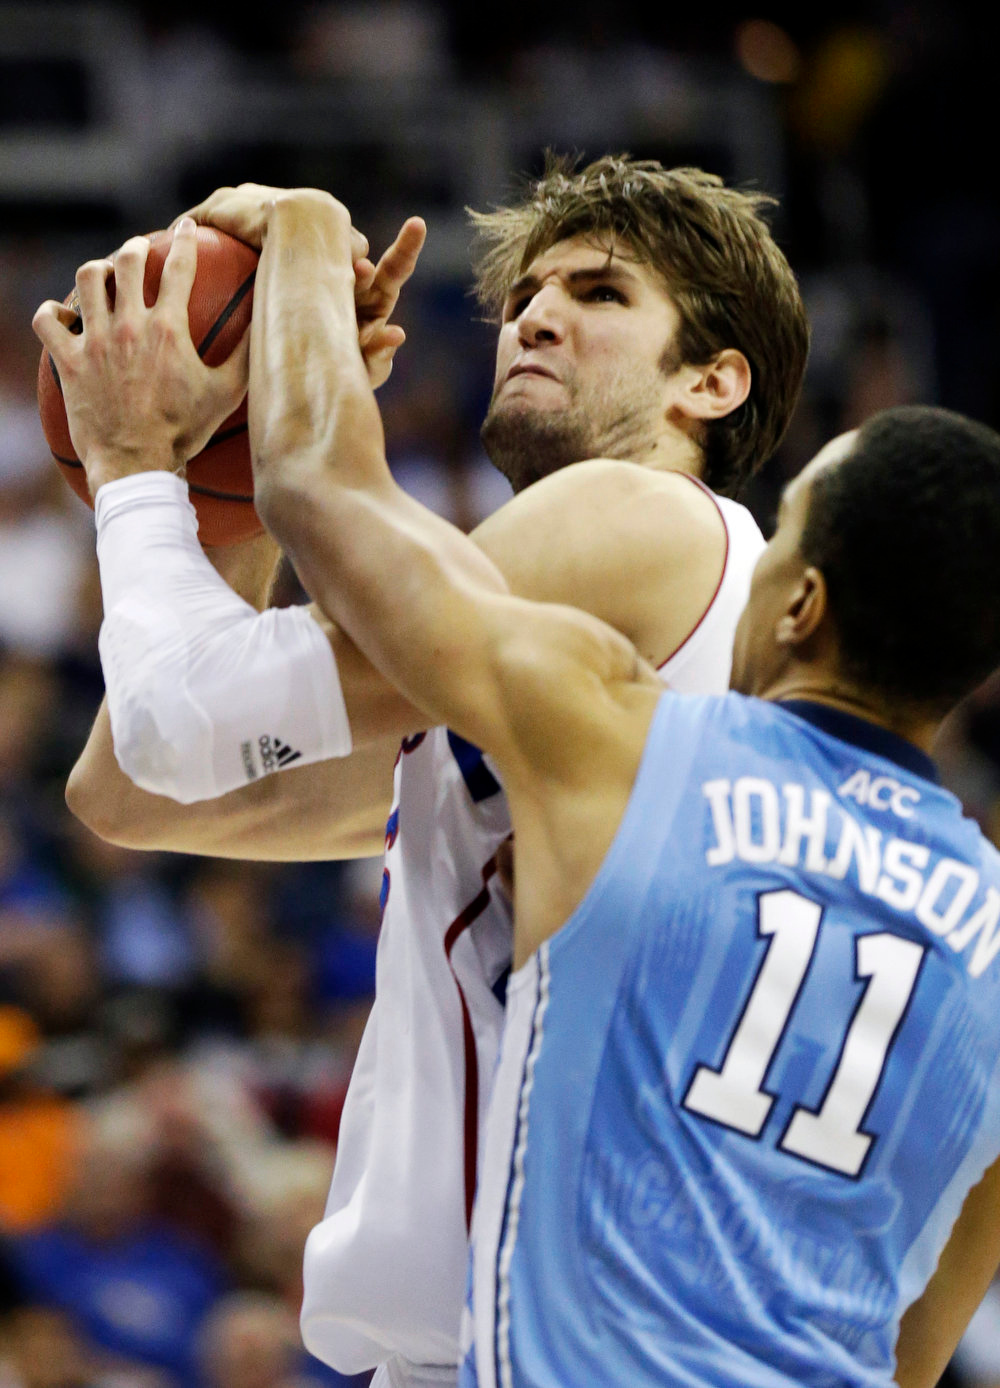 . Kansas center Jeff Withey, rear, is fouled by North Carolina forward Brice Johnson (11) during the first half of a third-round game in the NCAA college basketball tournament at the Sprint Center in Kansas City, Mo., Sunday, March 24, 2013. (AP Photo/Orlin Wagner)